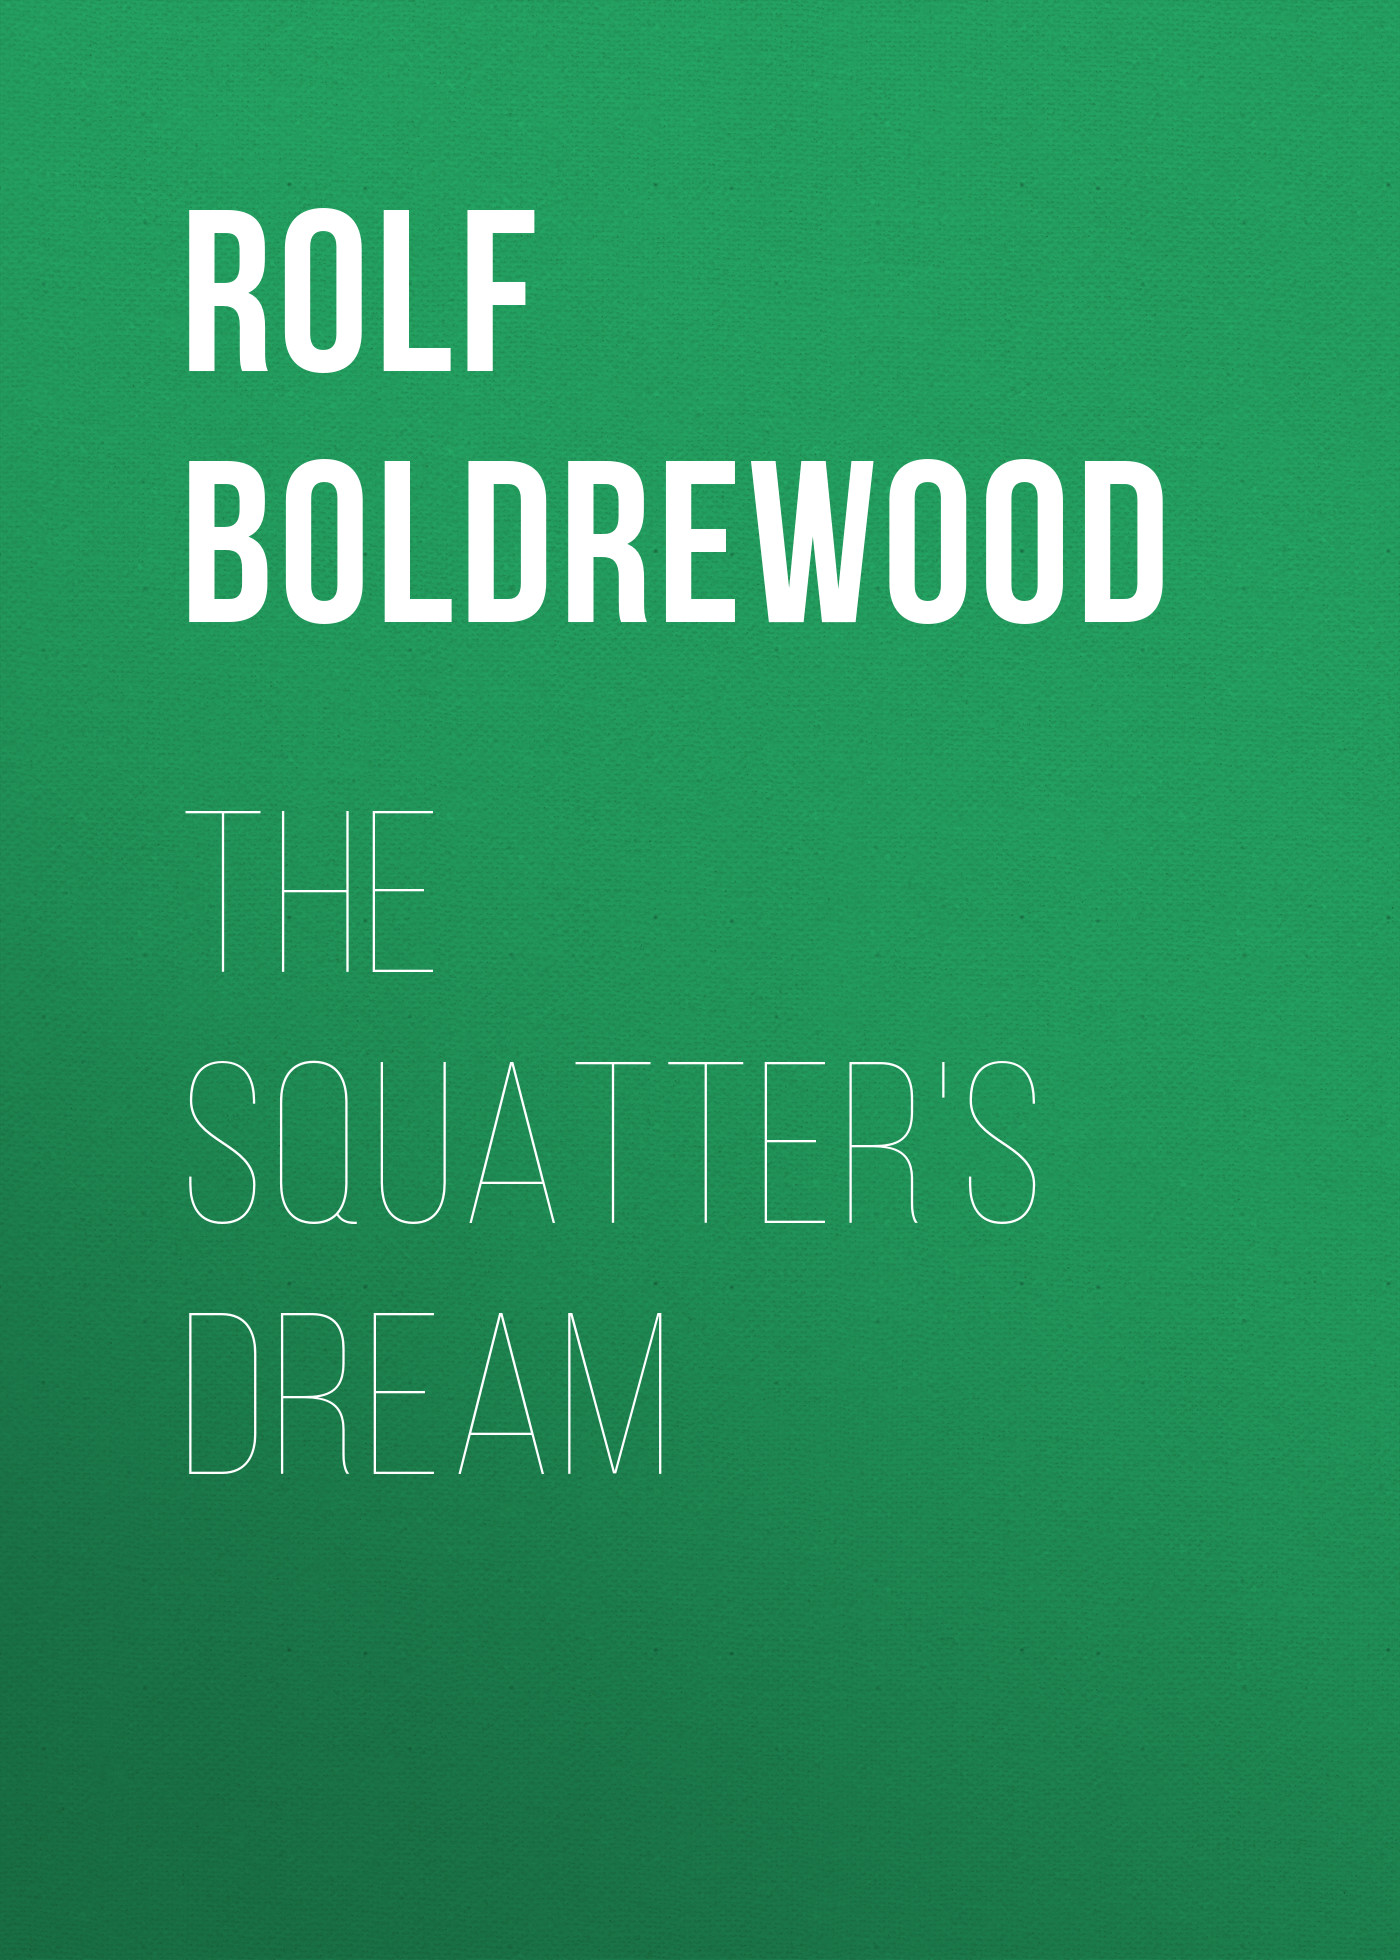 Rolf Boldrewood The Squatter's Dream rolf boldrewood the crooked stick or pollie s probation